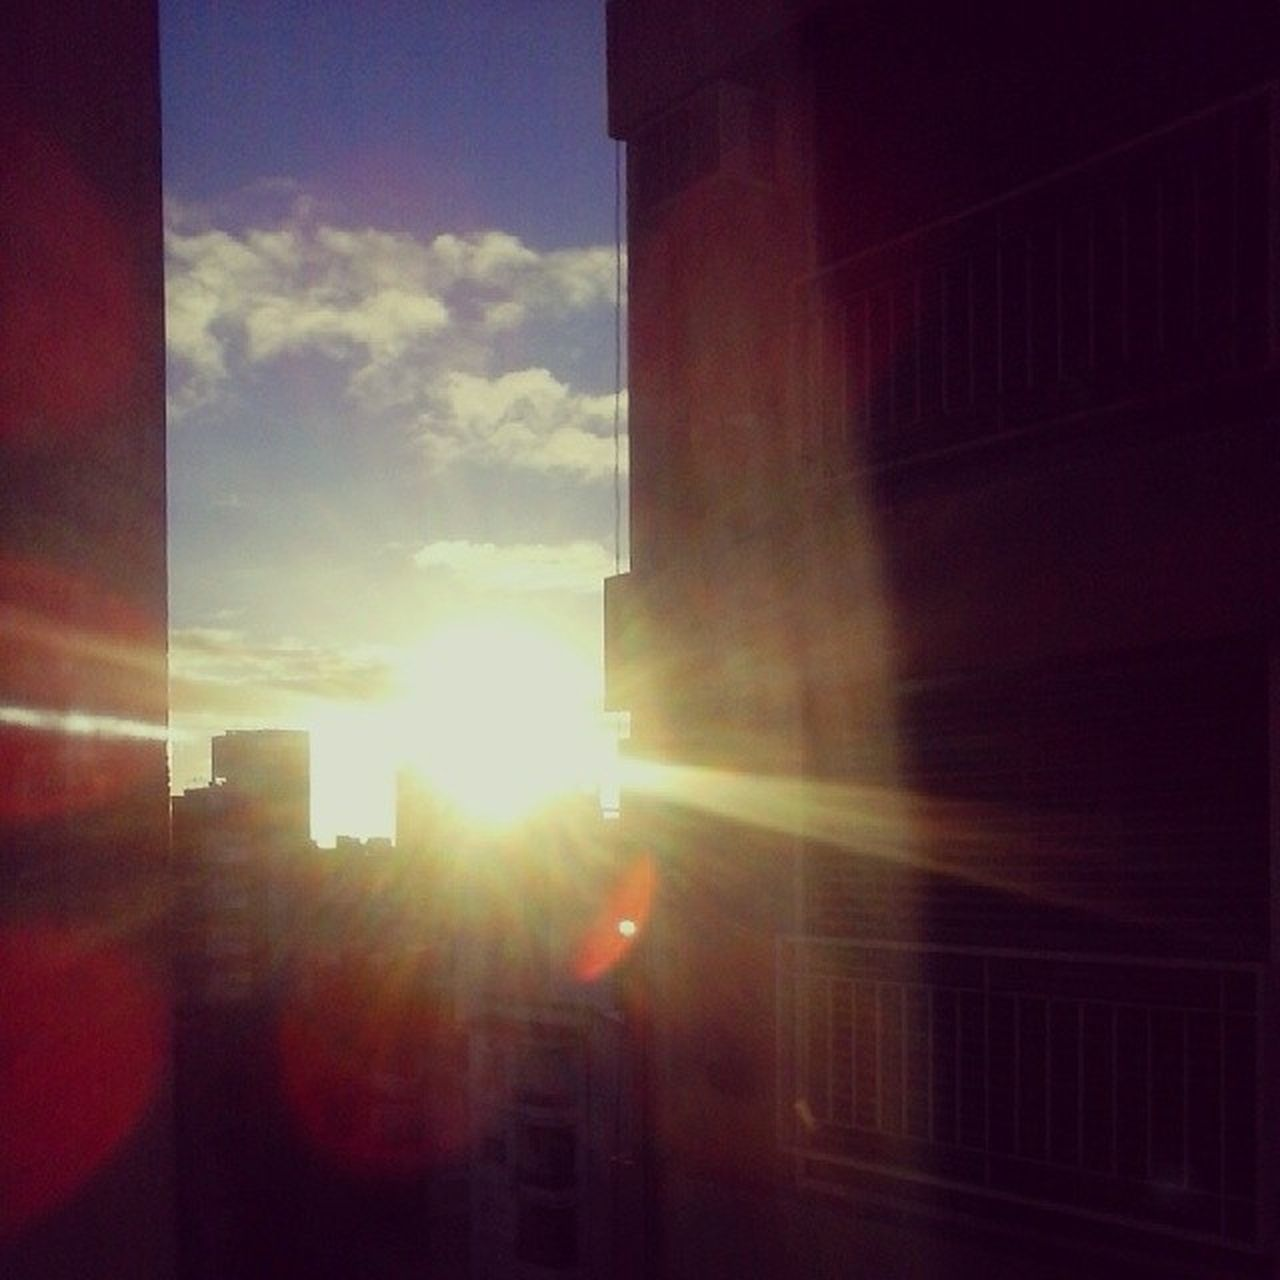 Fotones Photons Sunrise Laplata